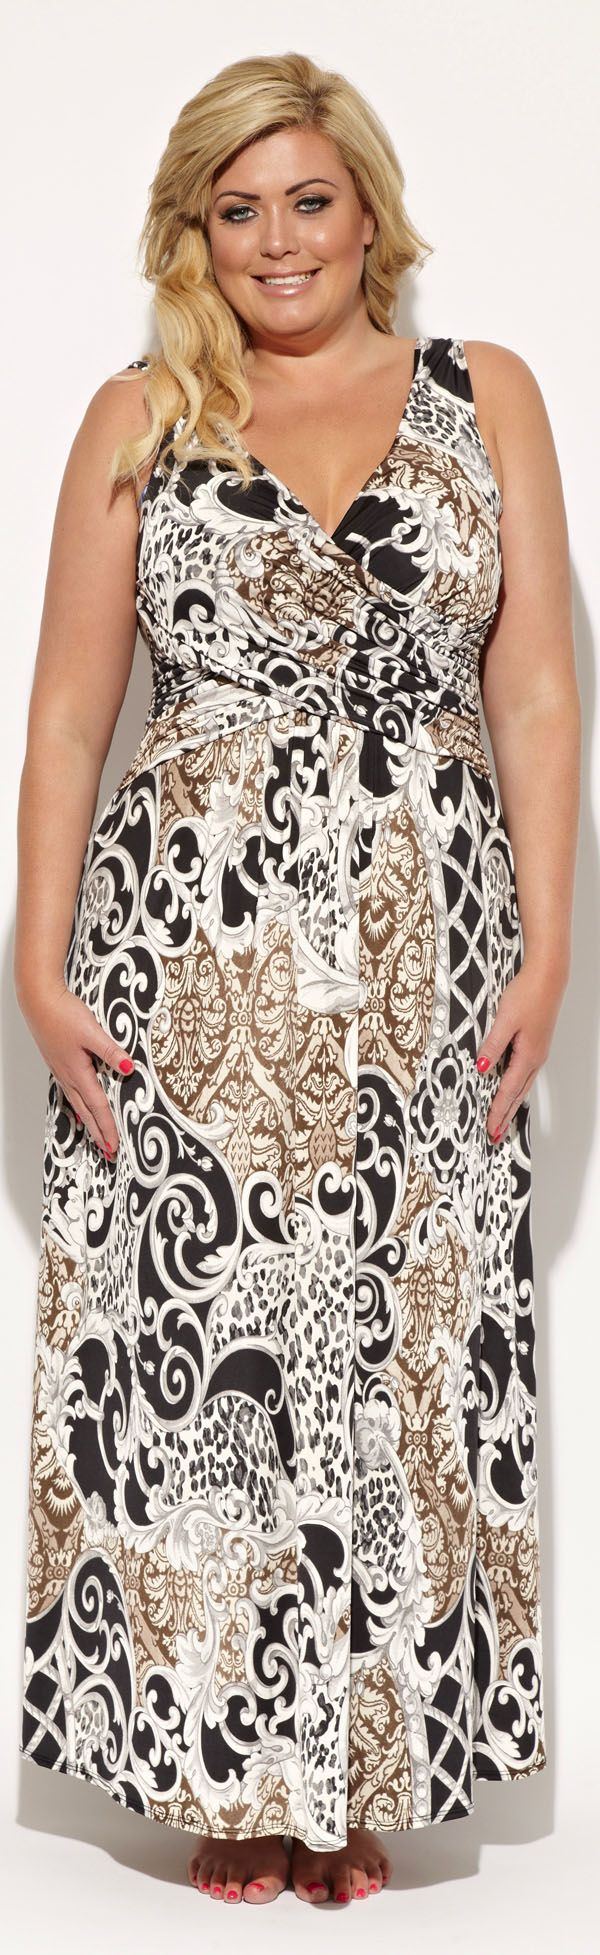 Boho Chic Maxi Dresses in Plus Sizes at http://boomerinas.com/2012/07/boho-chic-hippie-clothes-plus-size-maxi-dresses/